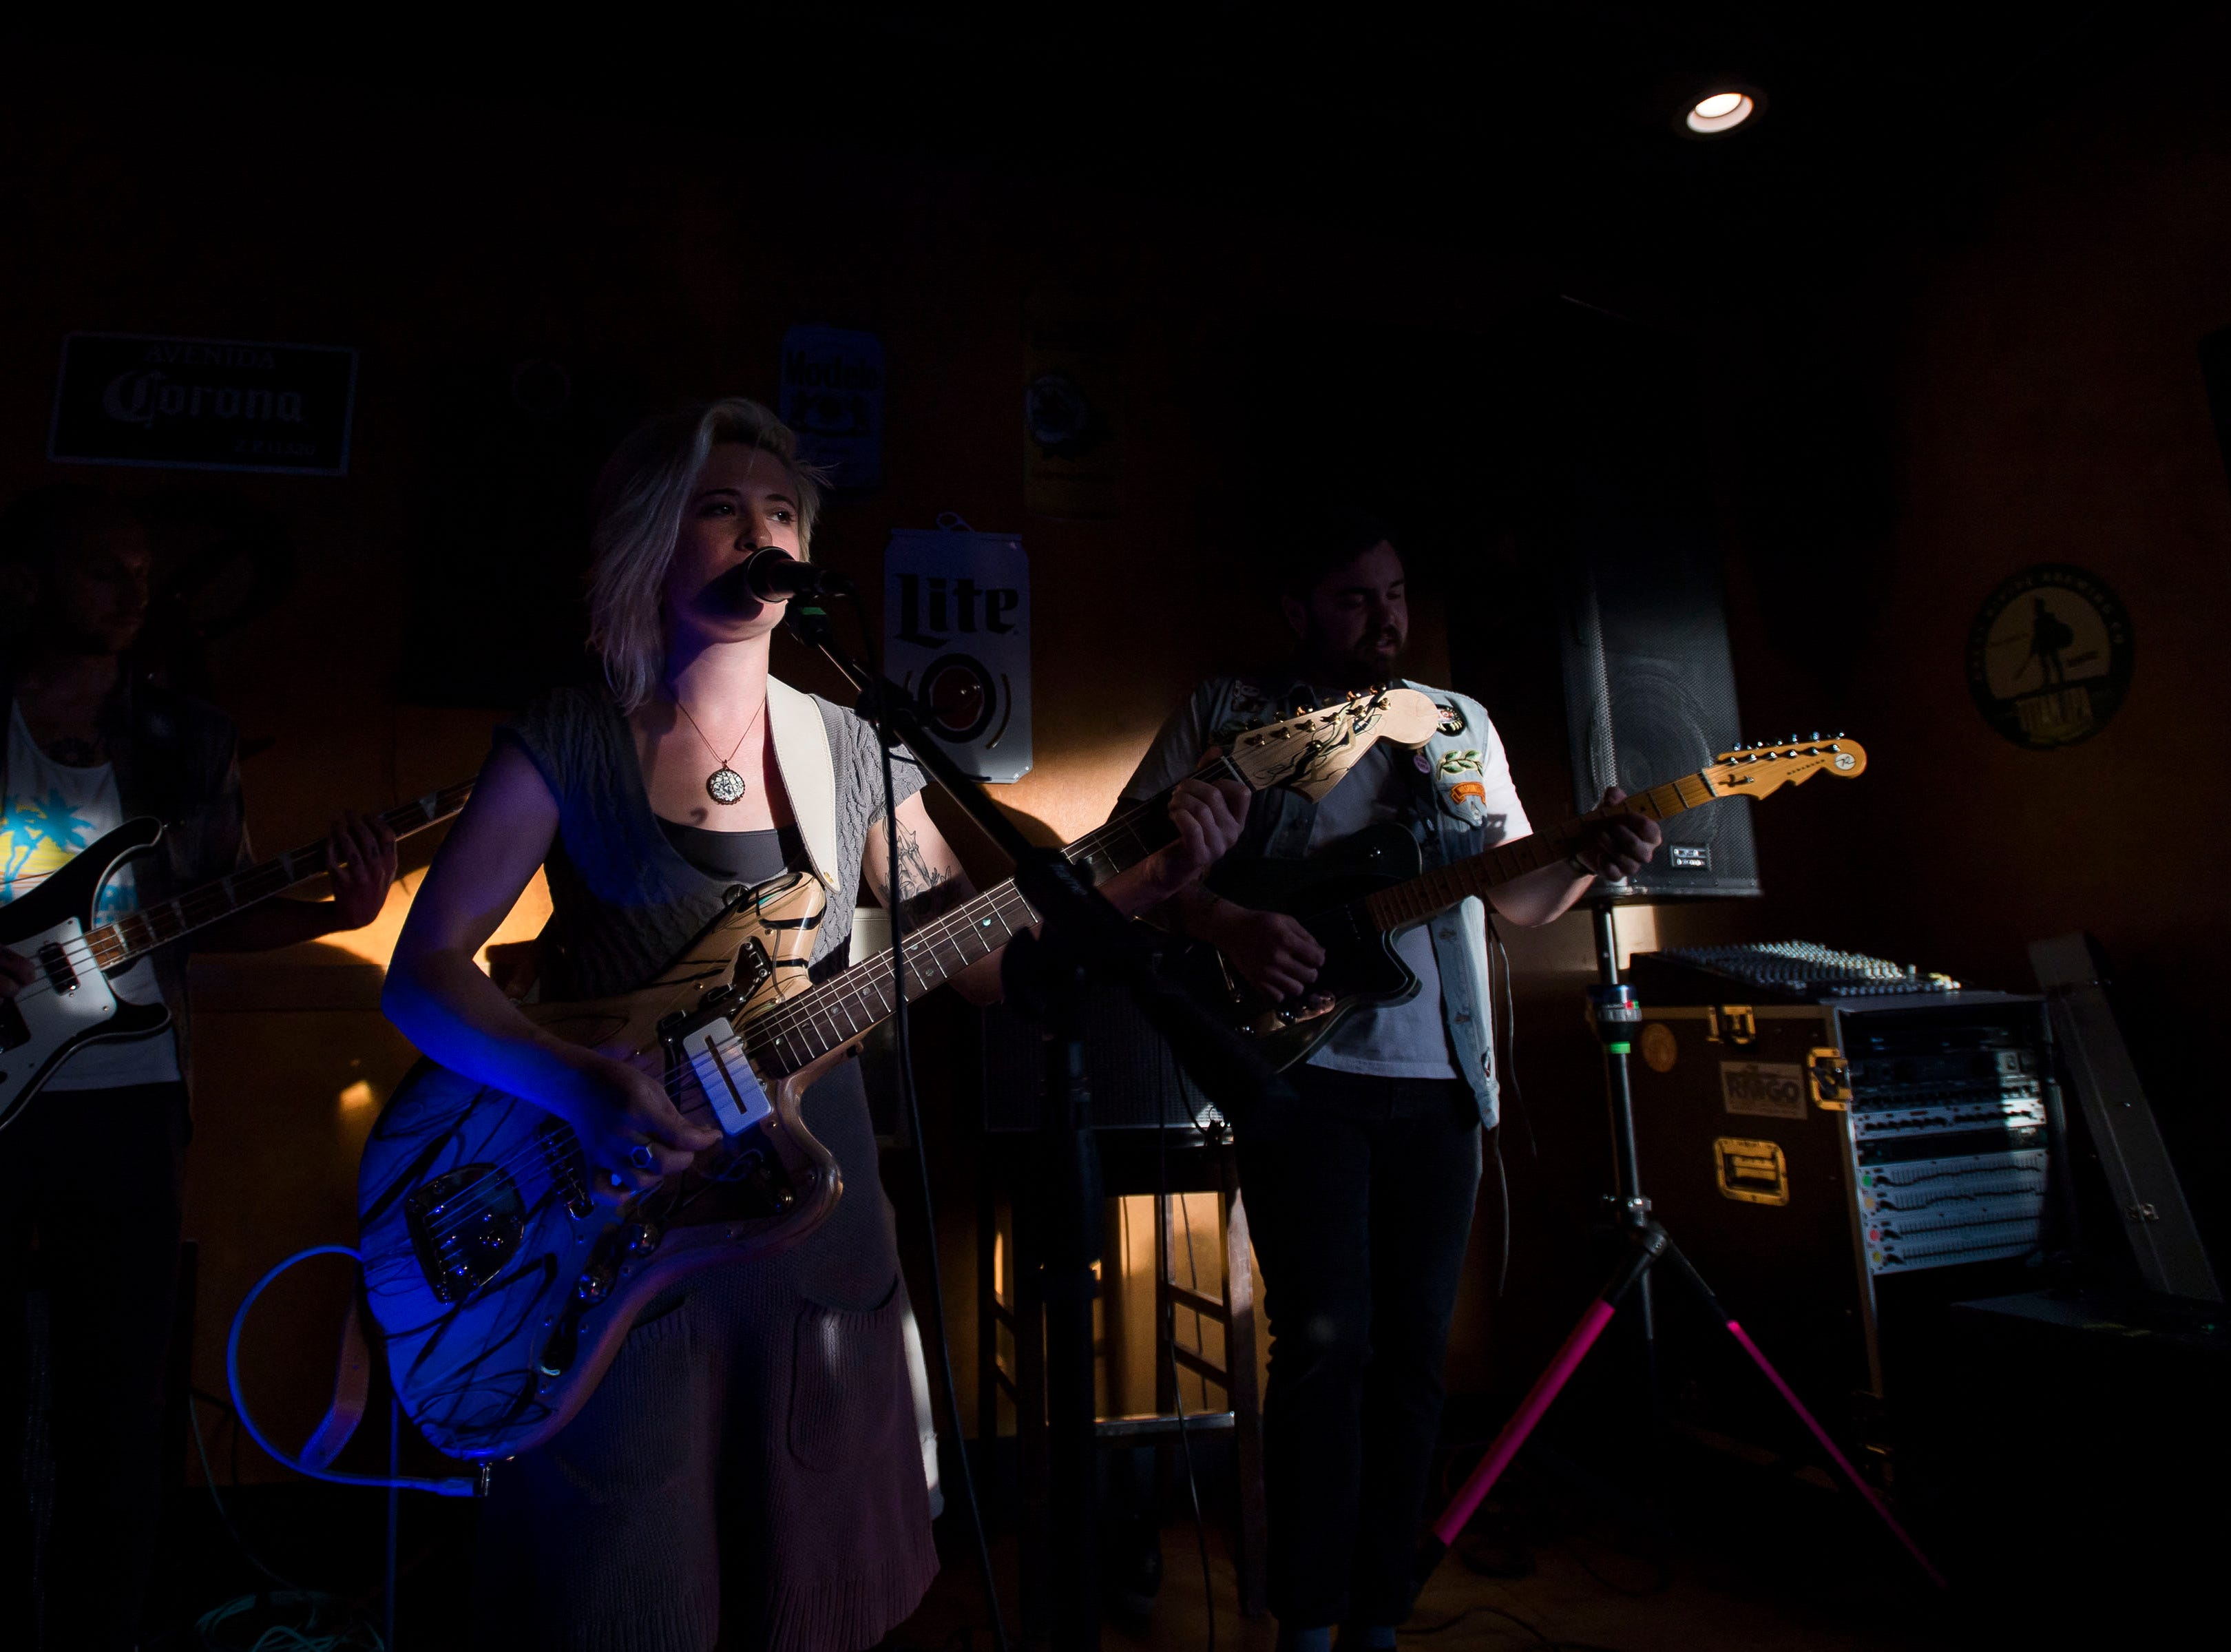 oxeye daisy performs at Illegal Pete's during the FoCoMX XI music festival on Friday, April 26, 2019, in Fort Collins, Colo.